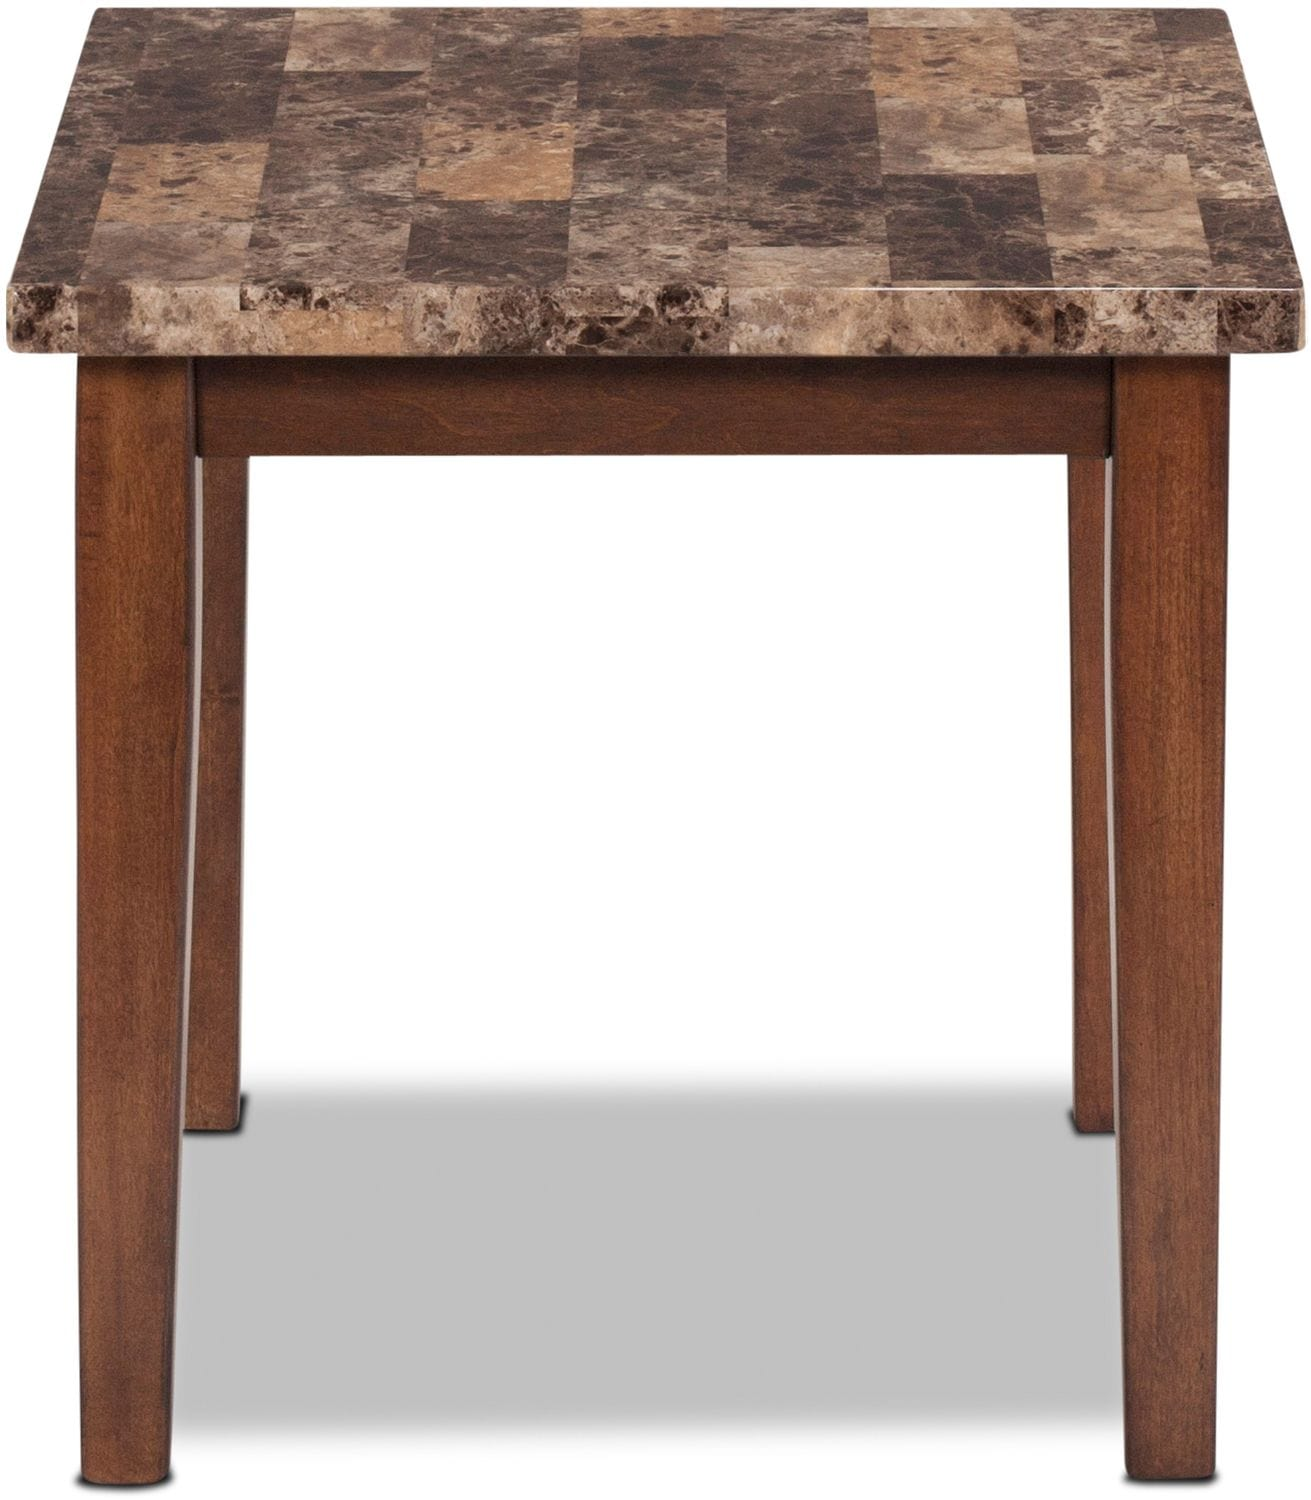 Adelaide Coffee Table and 2 End Tables - Warm Brown with Faux Marble